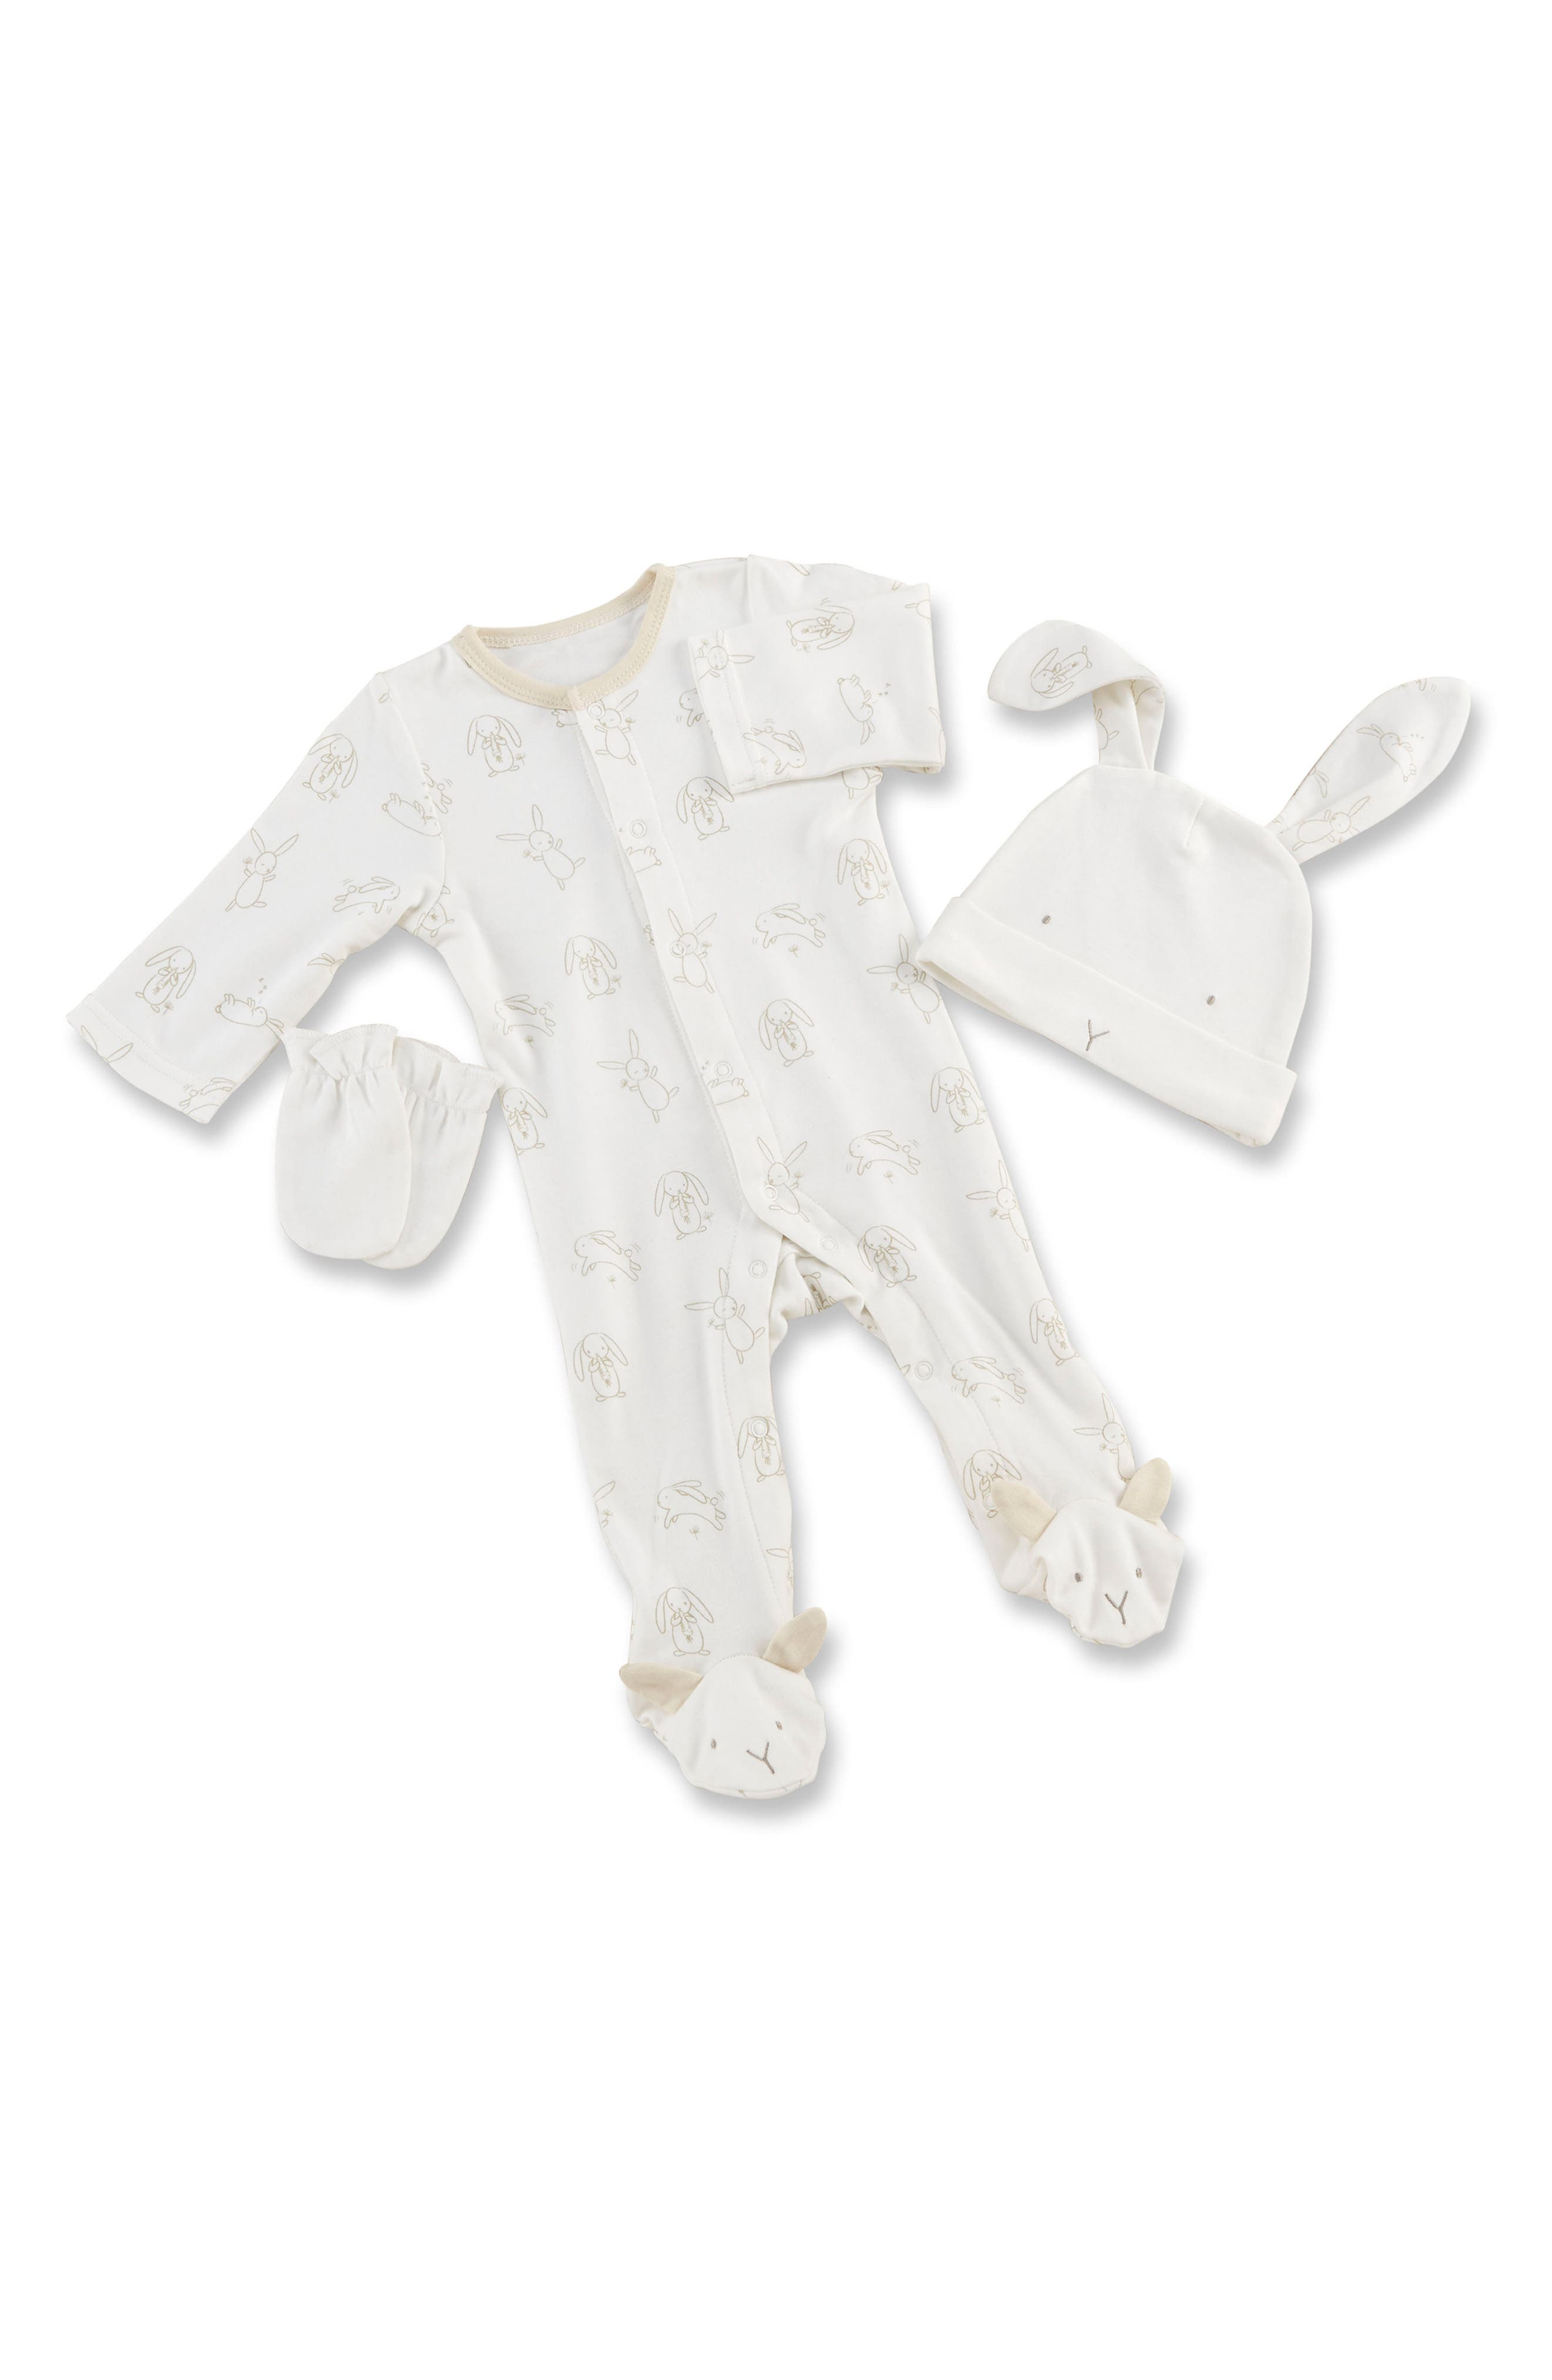 Main Image - Baby Aspen Nature Baby Footie, Hat & Mittens Set (Baby)